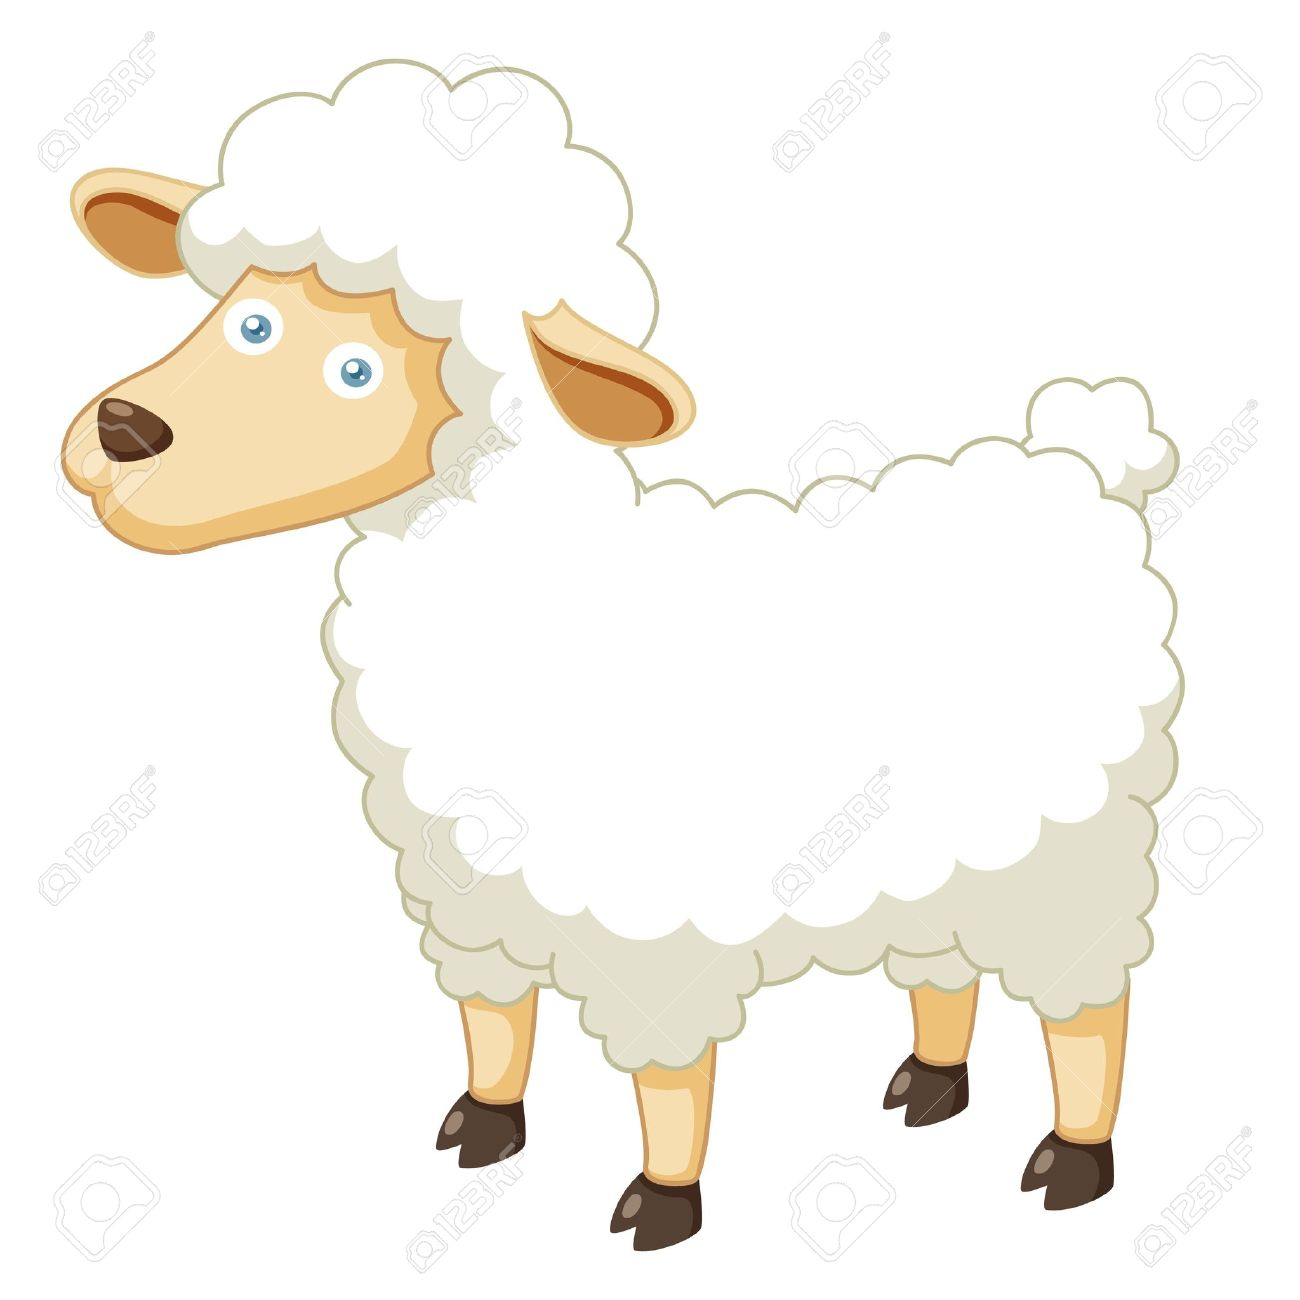 Illustration of a cartoon sheep Stock Vector - 16209322